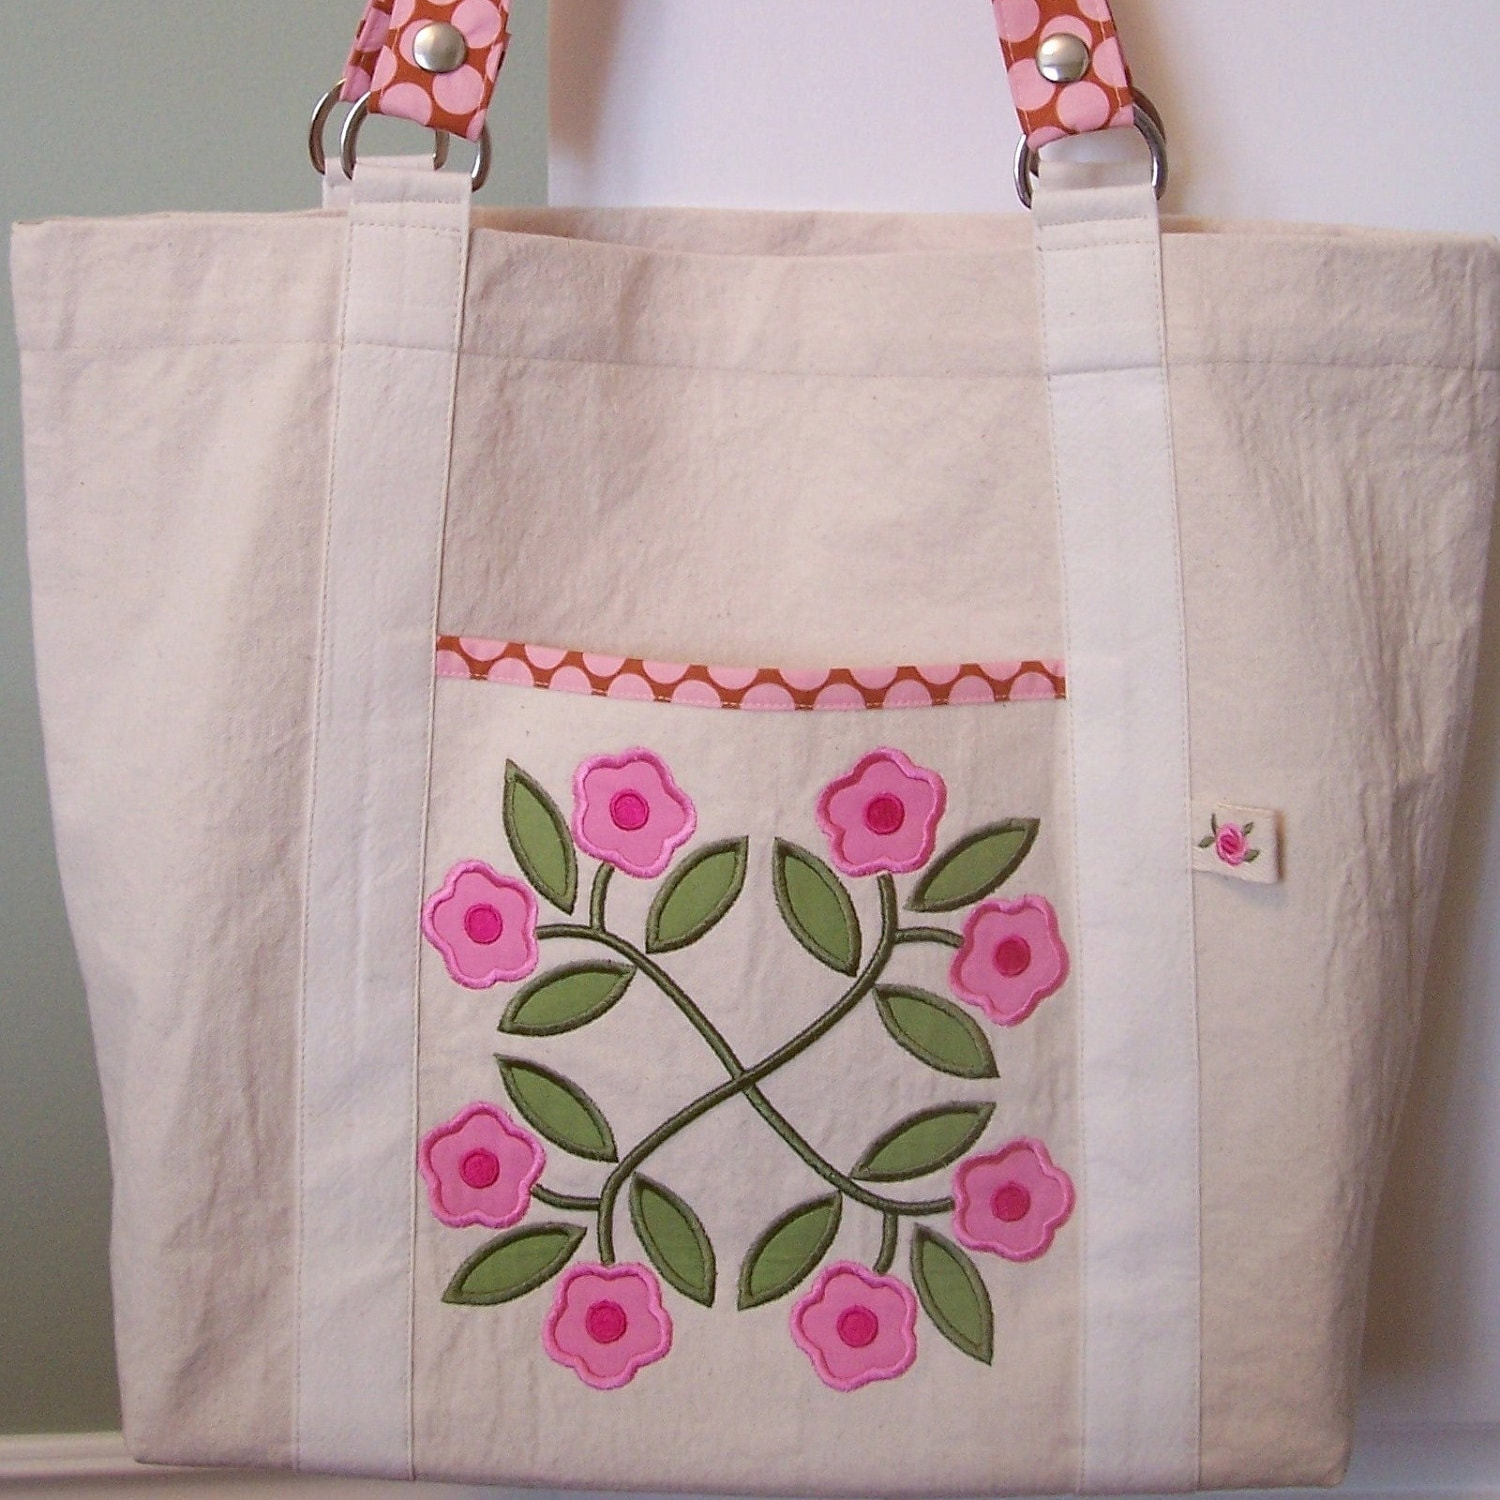 Floral Wreath Appliqué Embroidery Designs sc054d and Appliquéd Tote Sewing Instructions in PDF